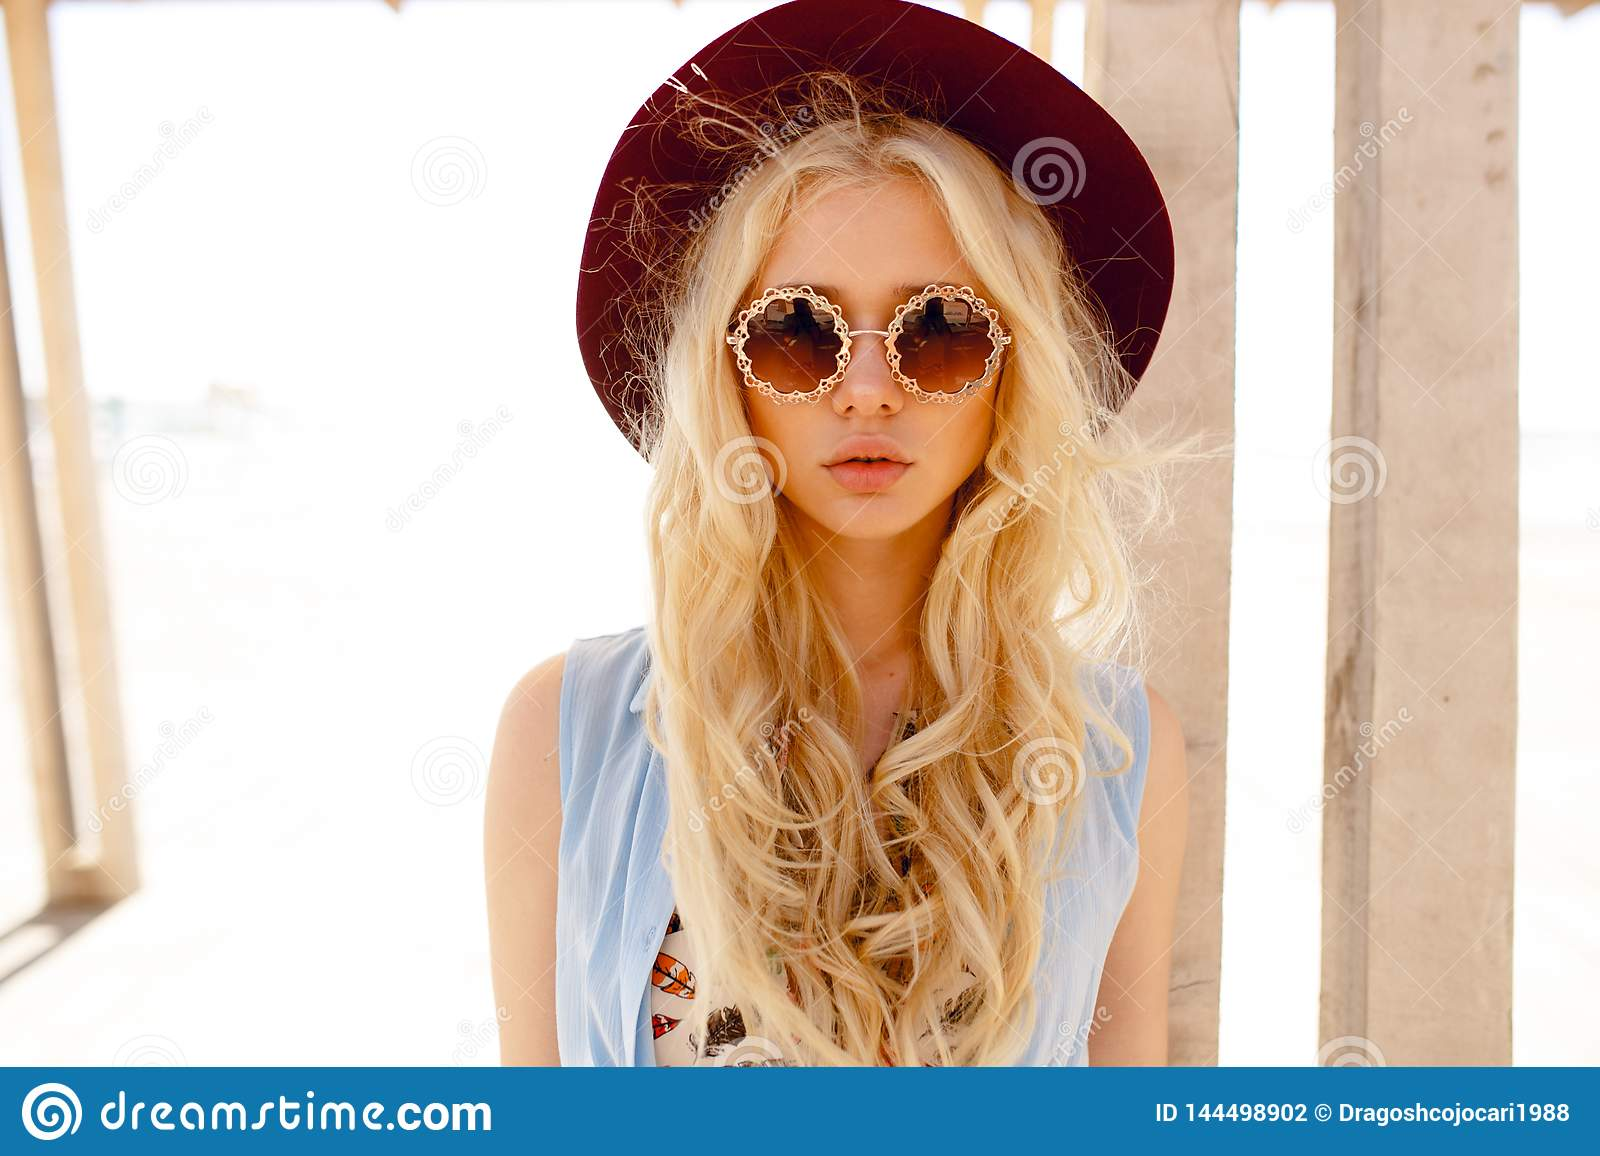 Sensual young woman with big lips, wearing in stylish hat and round sunglasses, posing outside.